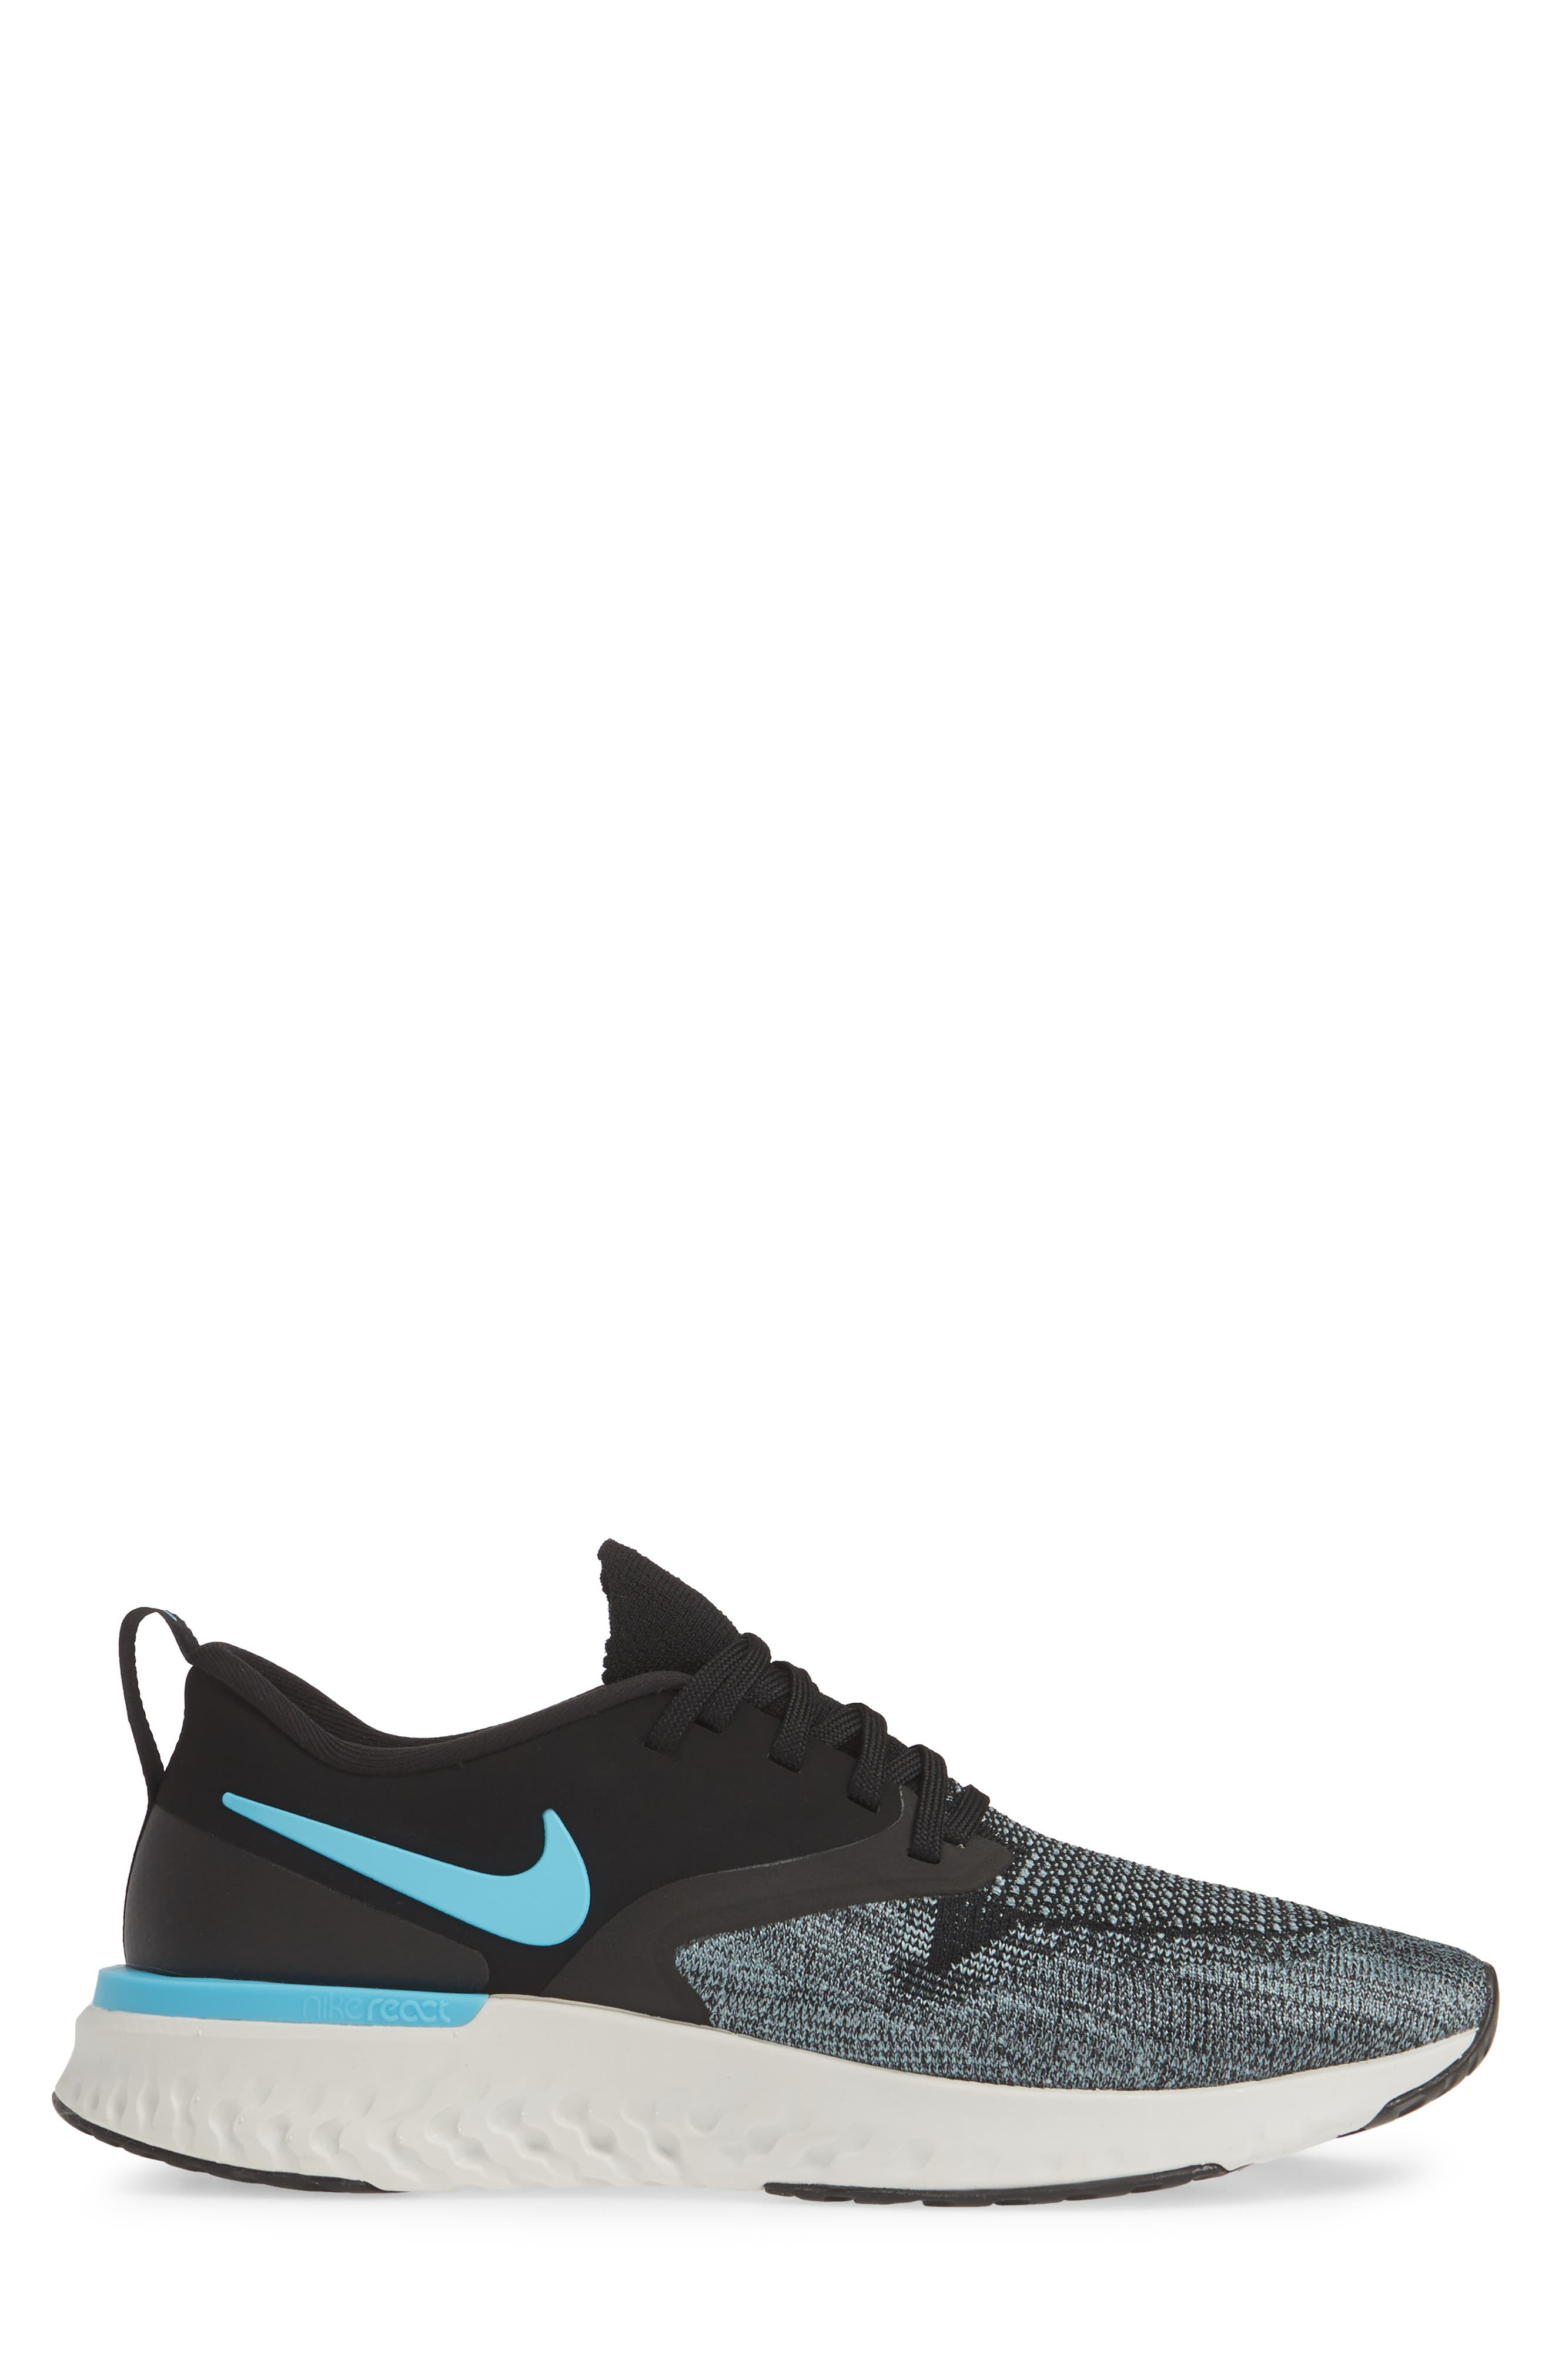 NIKE,                             Odyssey React 2 Flyknit Running Shoe,                             Alternate thumbnail 3, color,                             BLACK/ BLUE FURY/ AVIATOR GREY